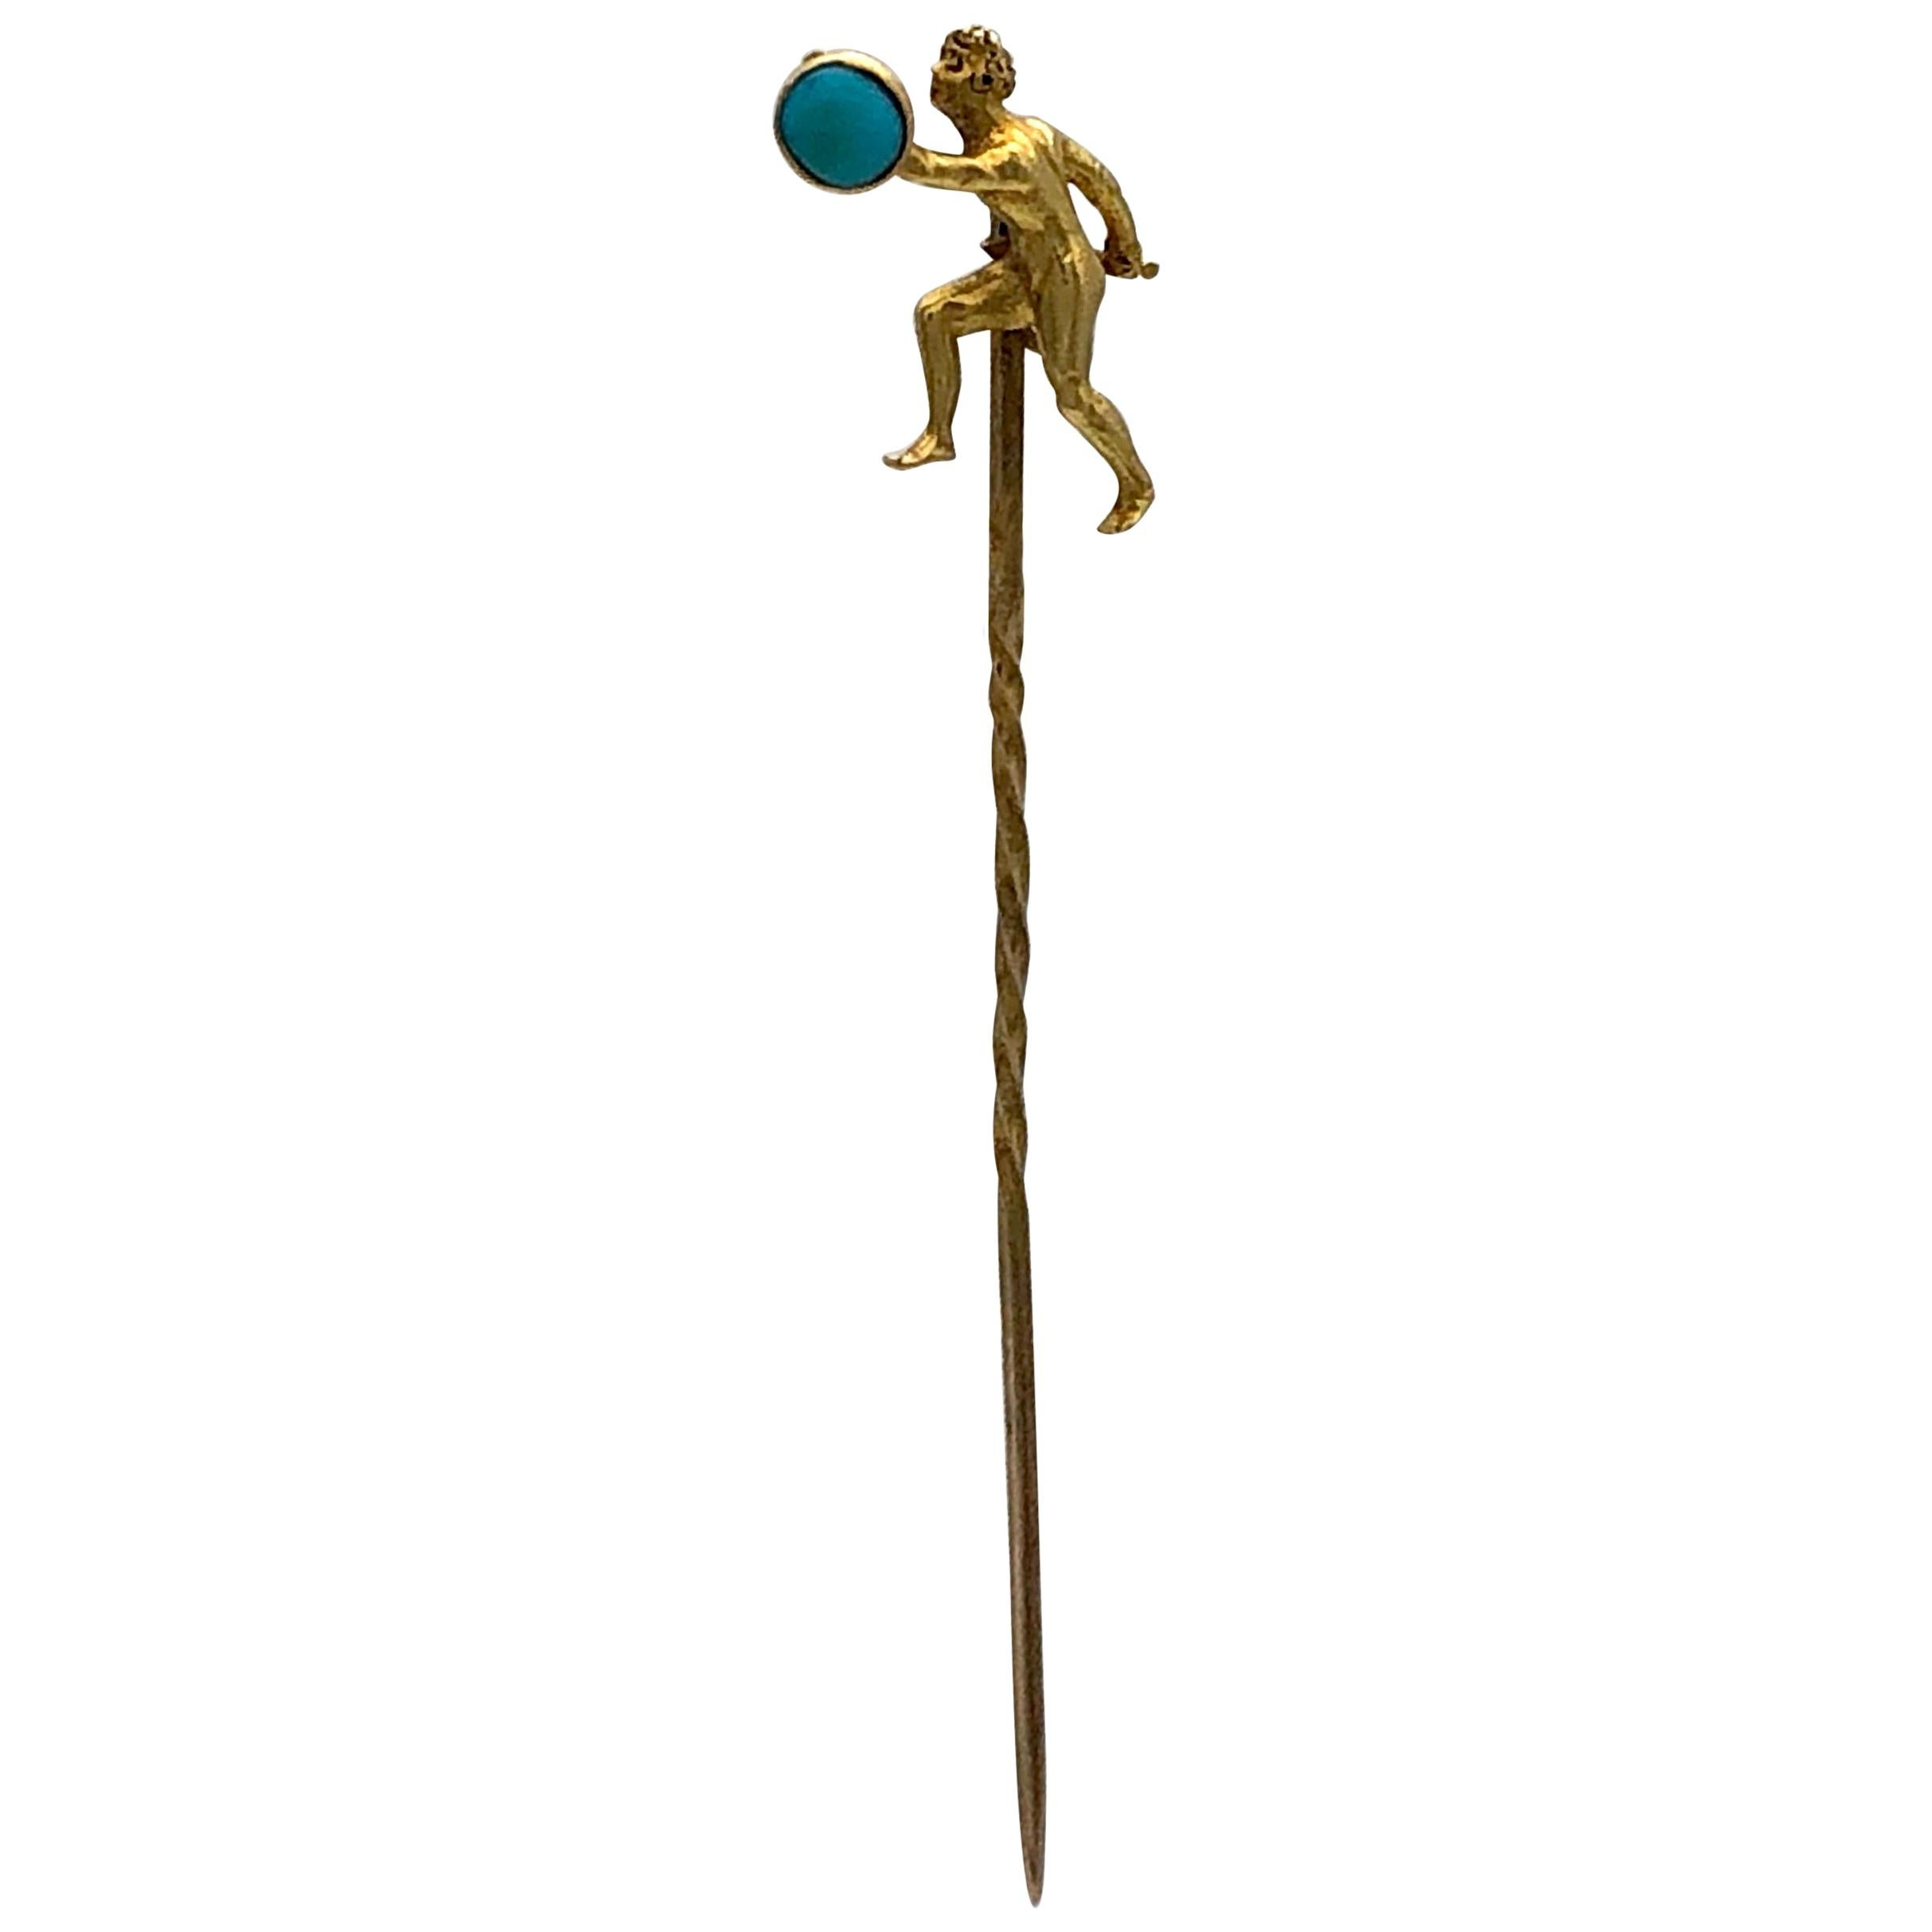 Antique Gold Sword Fighter Shield Warrior Turquoise Cabochon Stickpin Tiepin